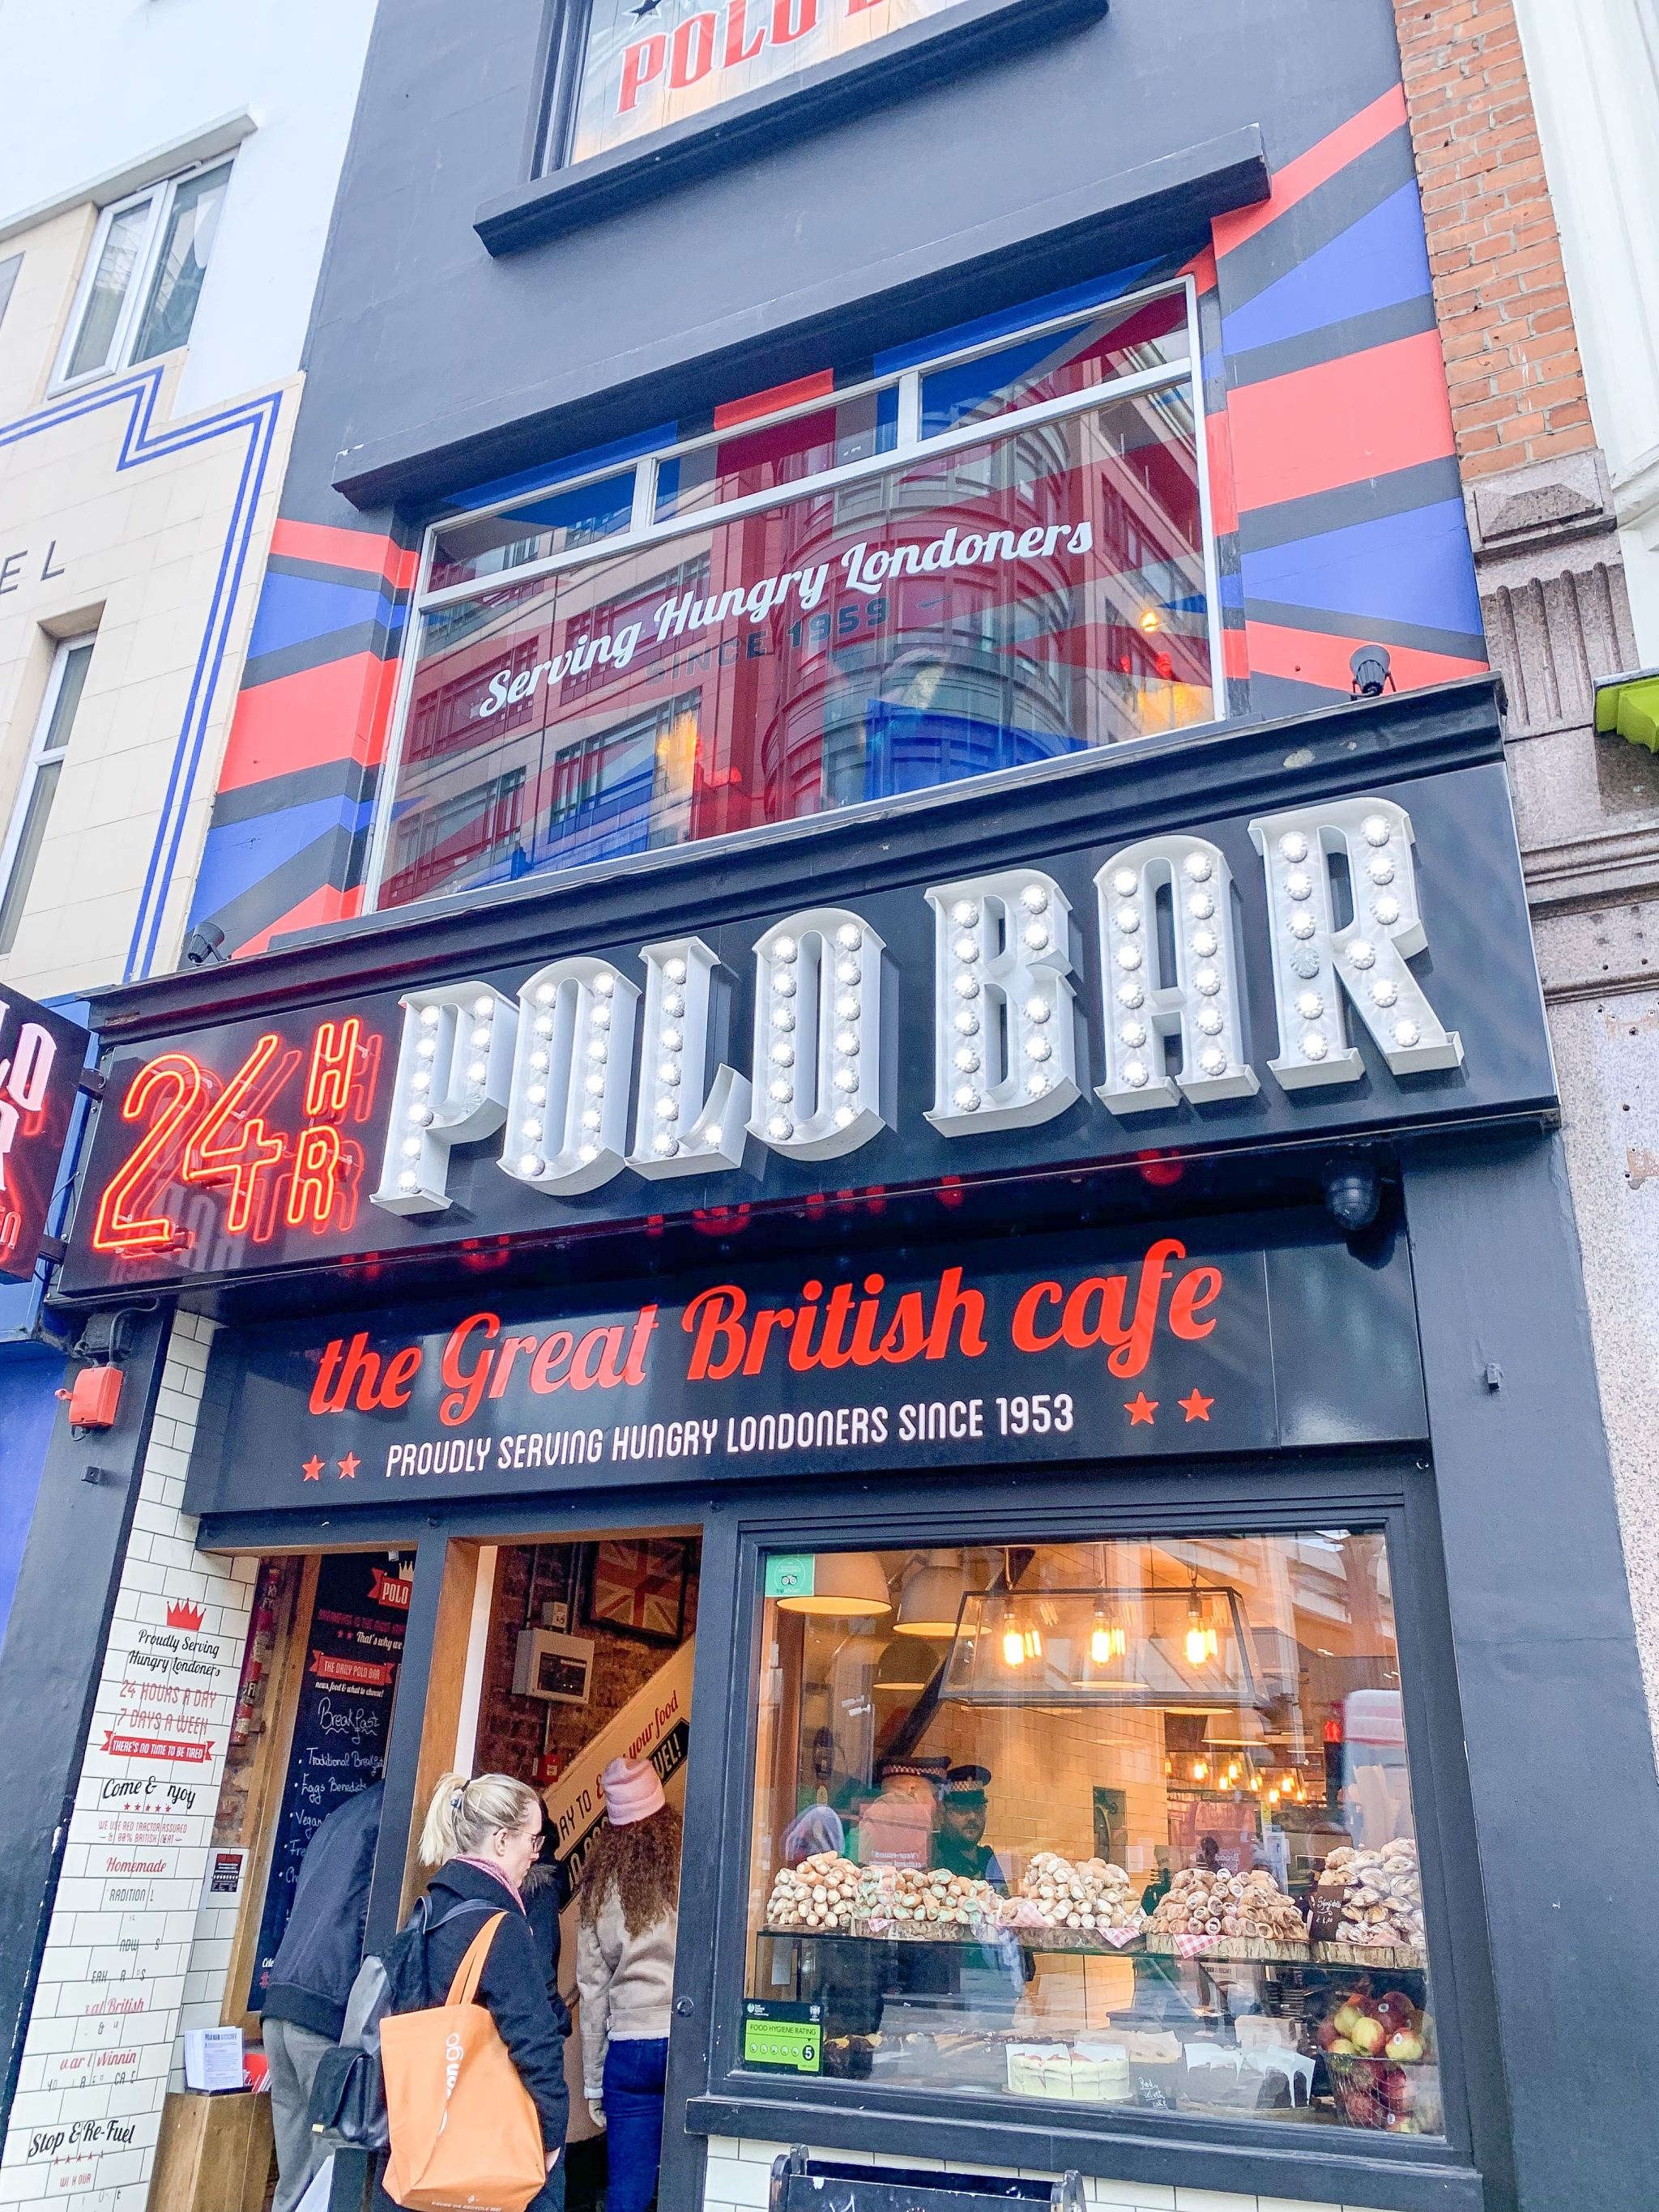 24 hour polo bar in liverpool street